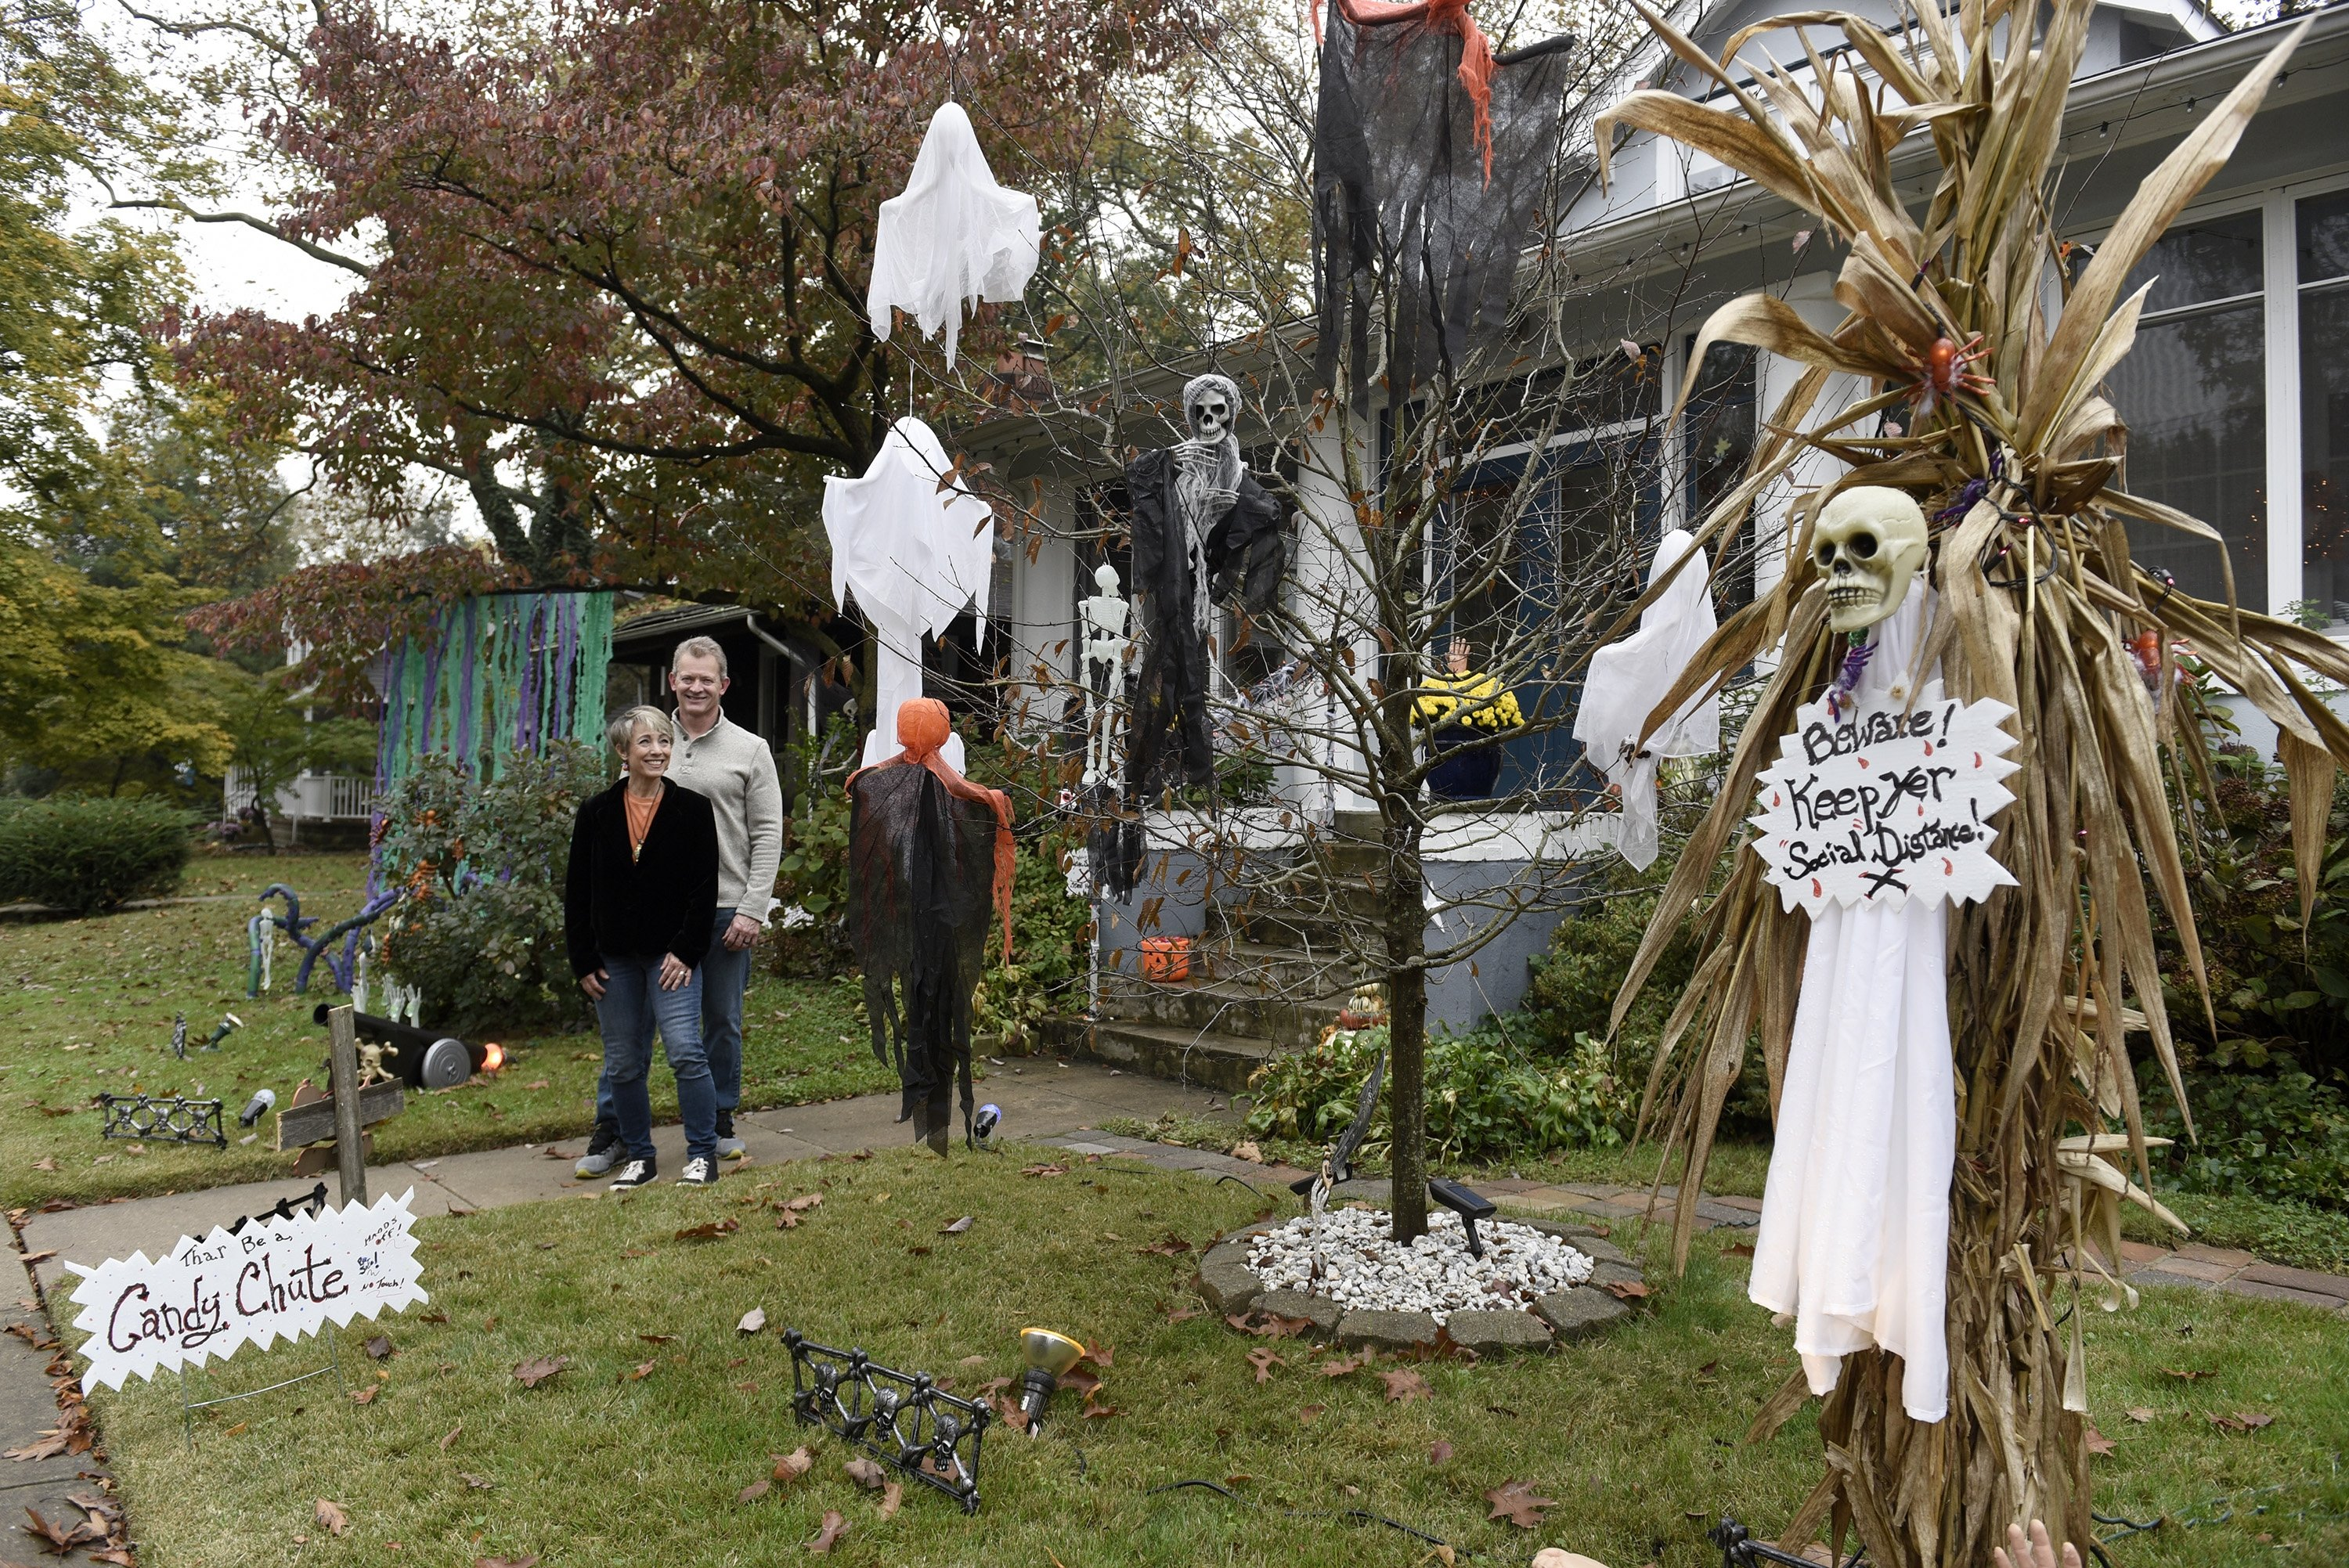 Carol McCarthy and her husband, Tom, pose for a portrait at their home they decorated for Halloween, Monday, Oct. 26, 2020, in Palmyra, N.J. (AP Photo)